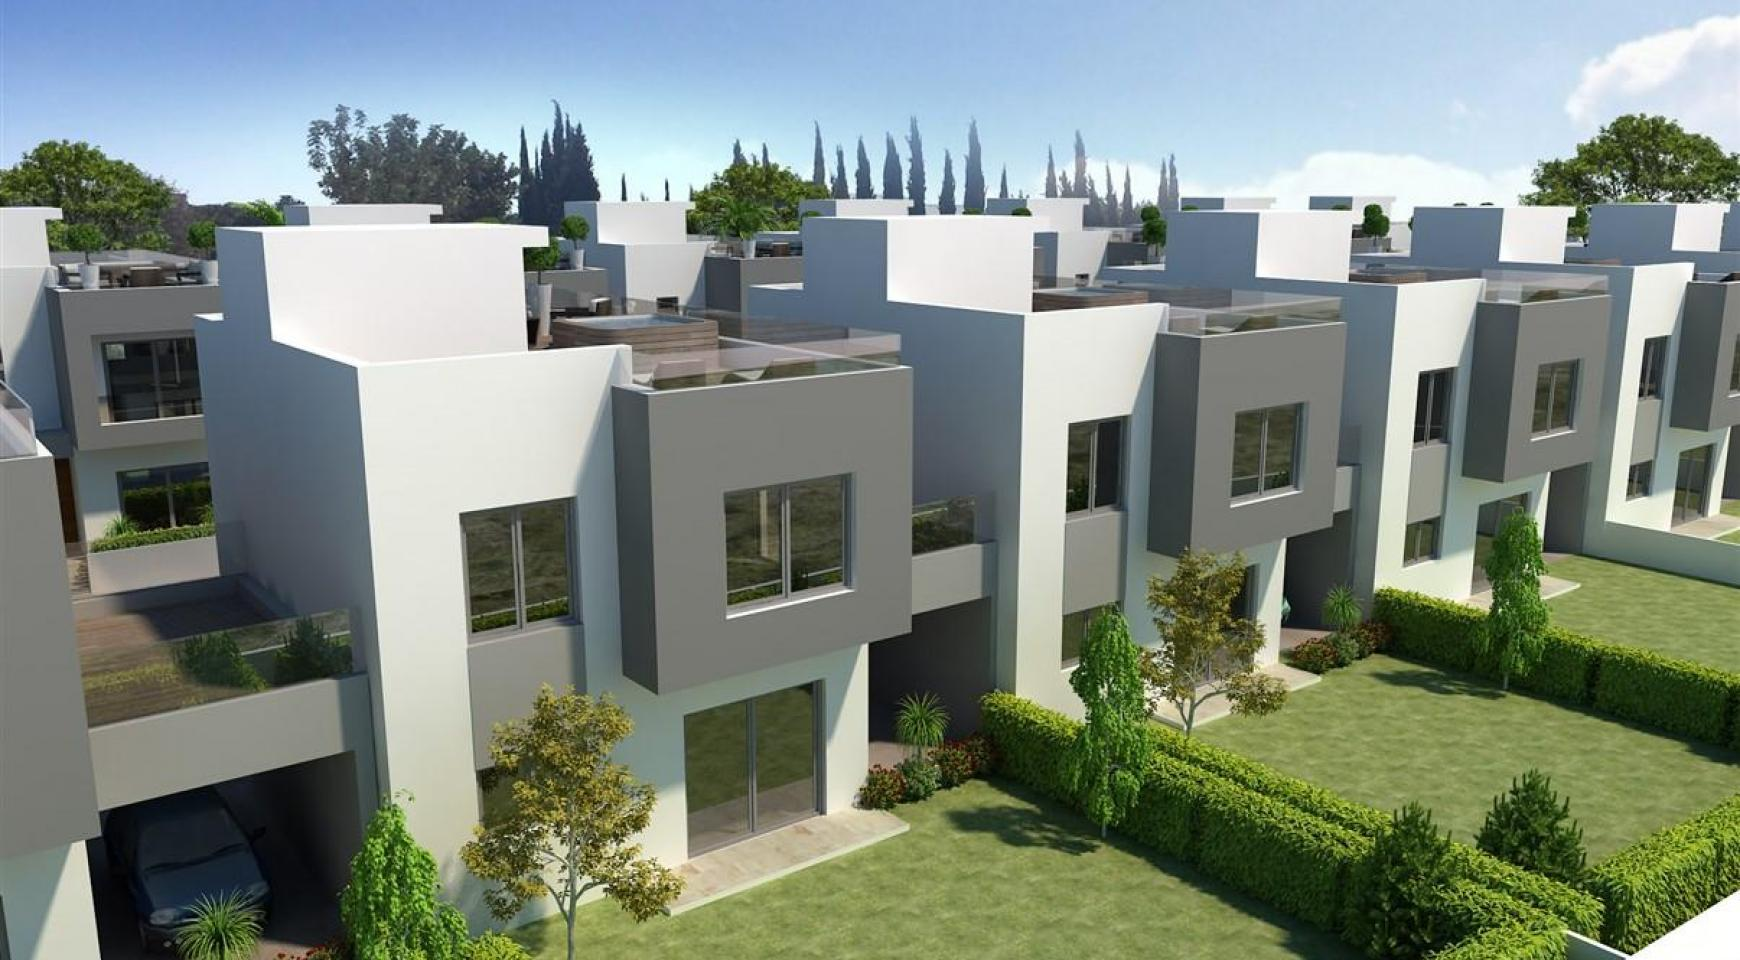 3 Bedroom Villa in New Project in Paphos - 29